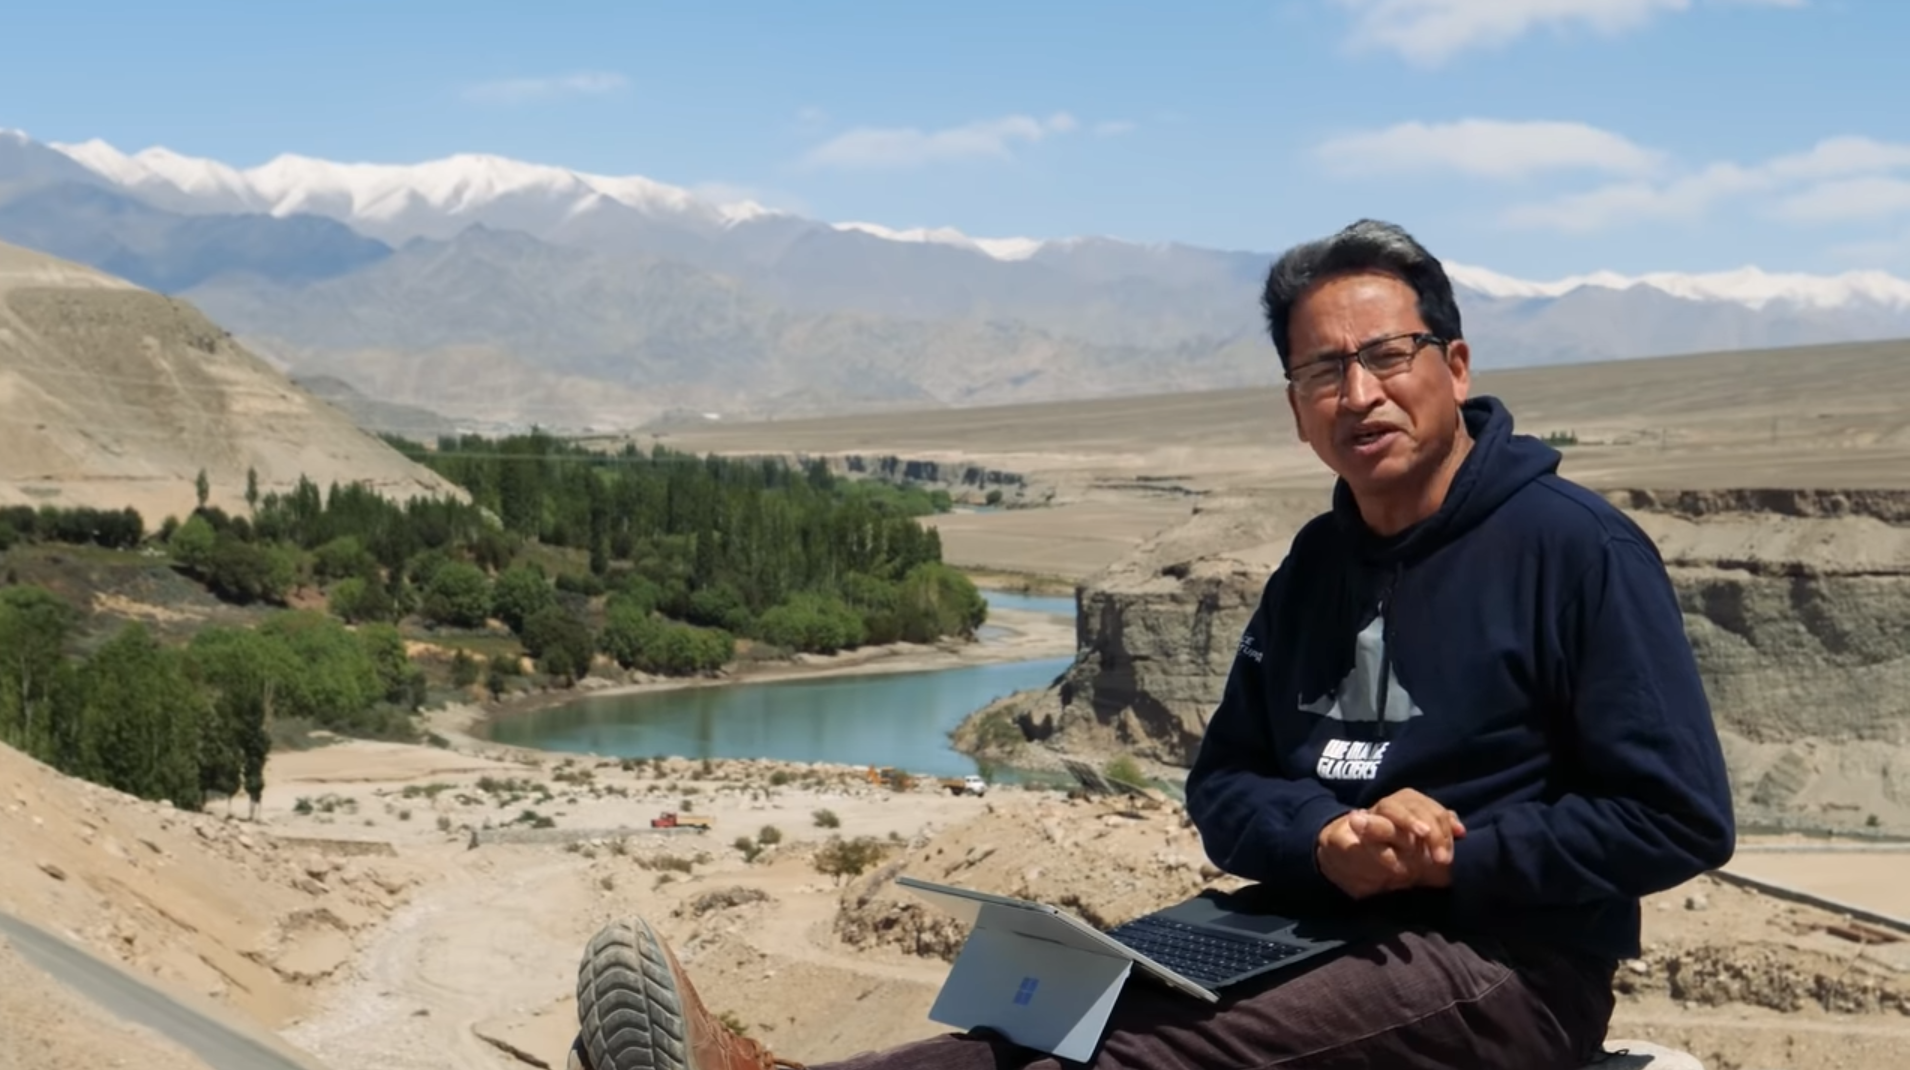 Sonam Wangchuk appeals to all Indian citizens